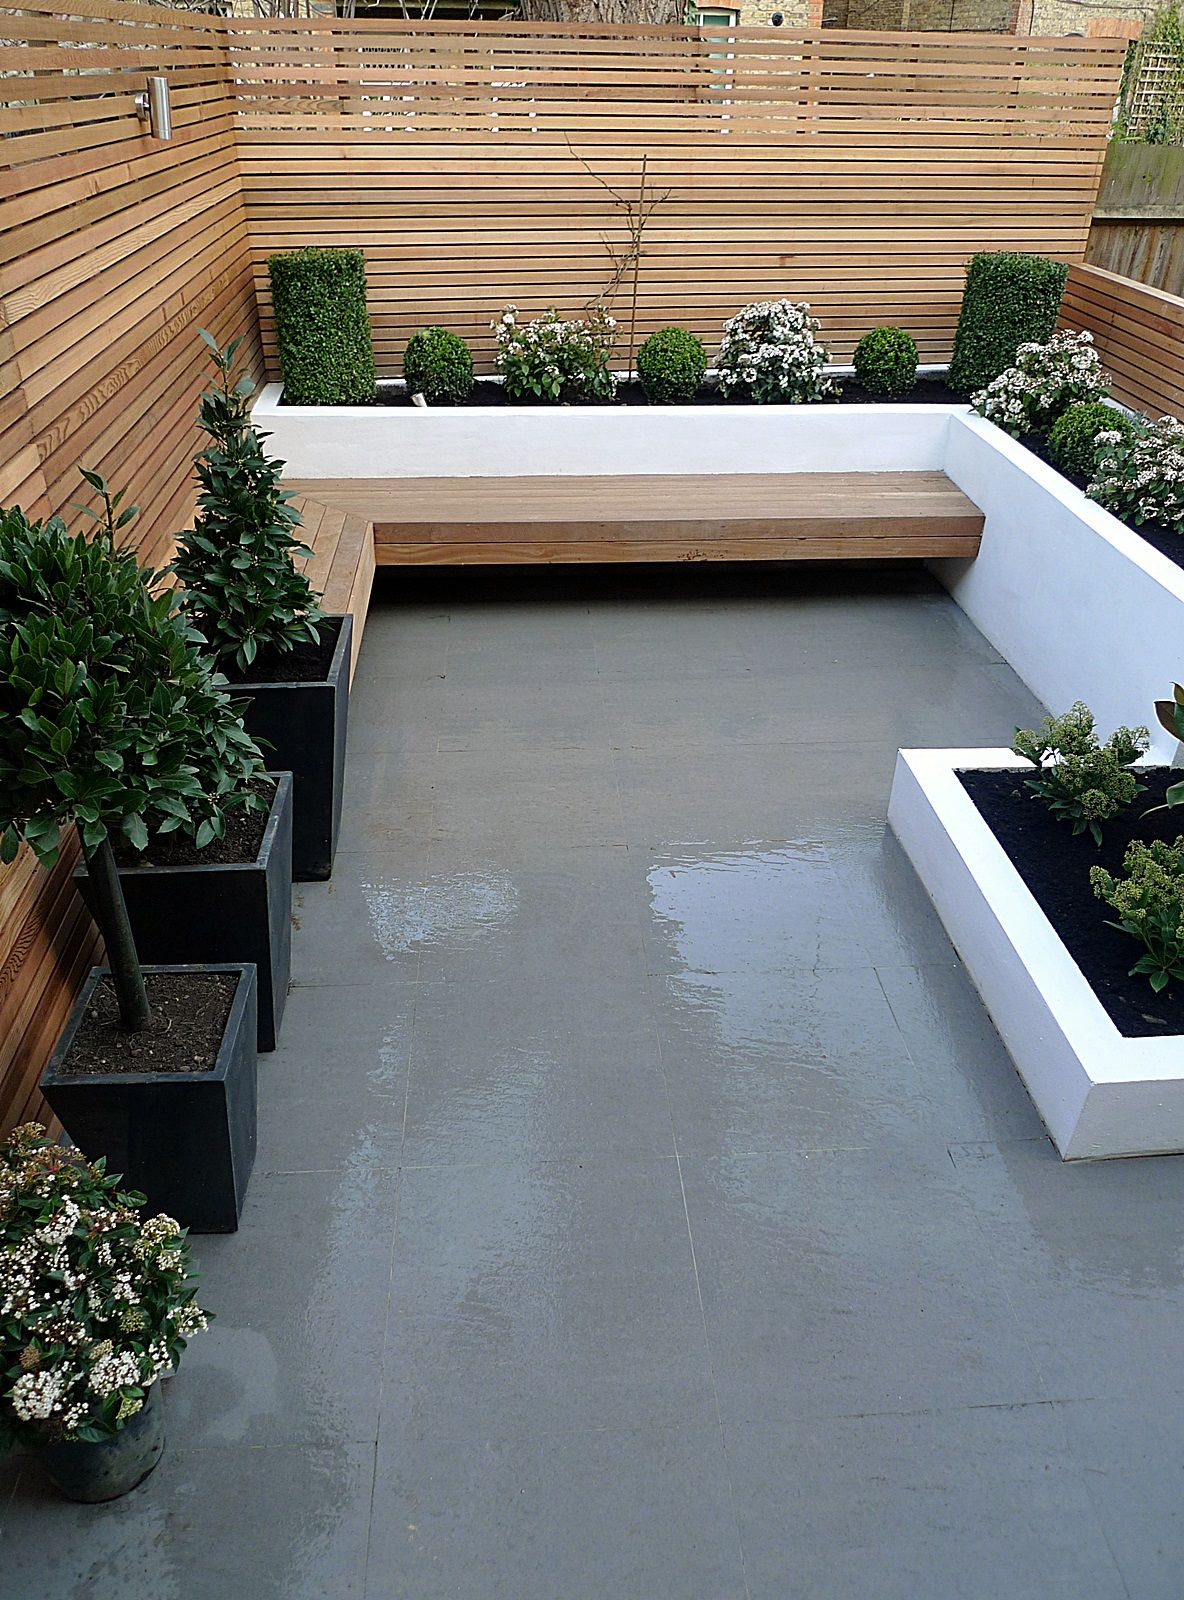 garden tiles design. Garden design designer clapham balham battersea small low maintenance  modern garden 21 How To Start A Vegetable 21st Designers and Modern